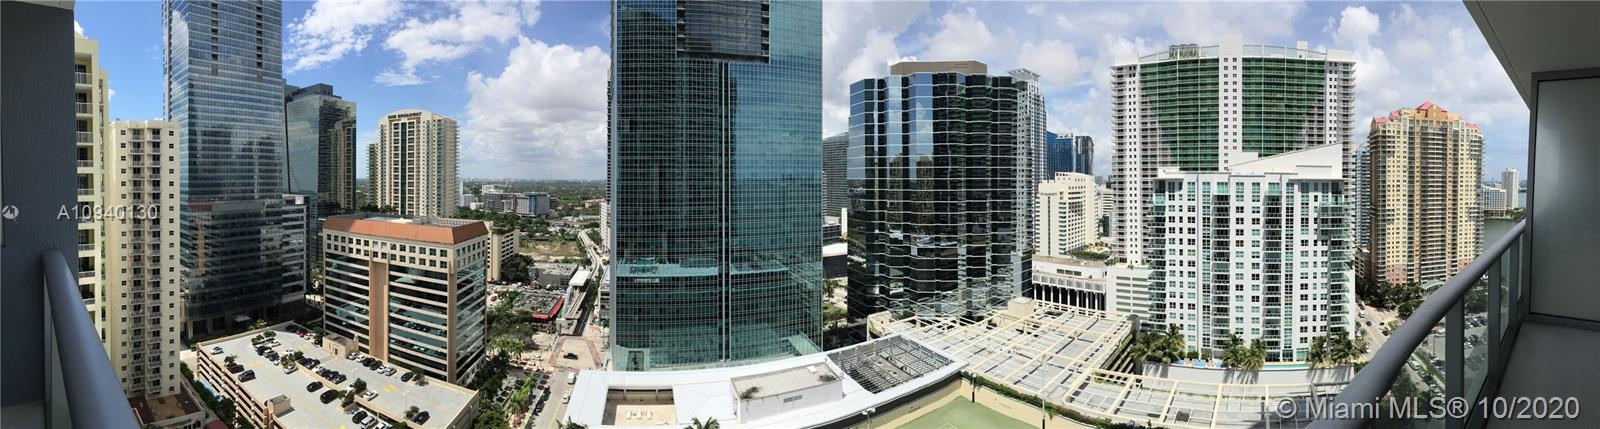 Live in this magnificent & sophisticated condo in Miami's most desirable neighborhood. European cabi